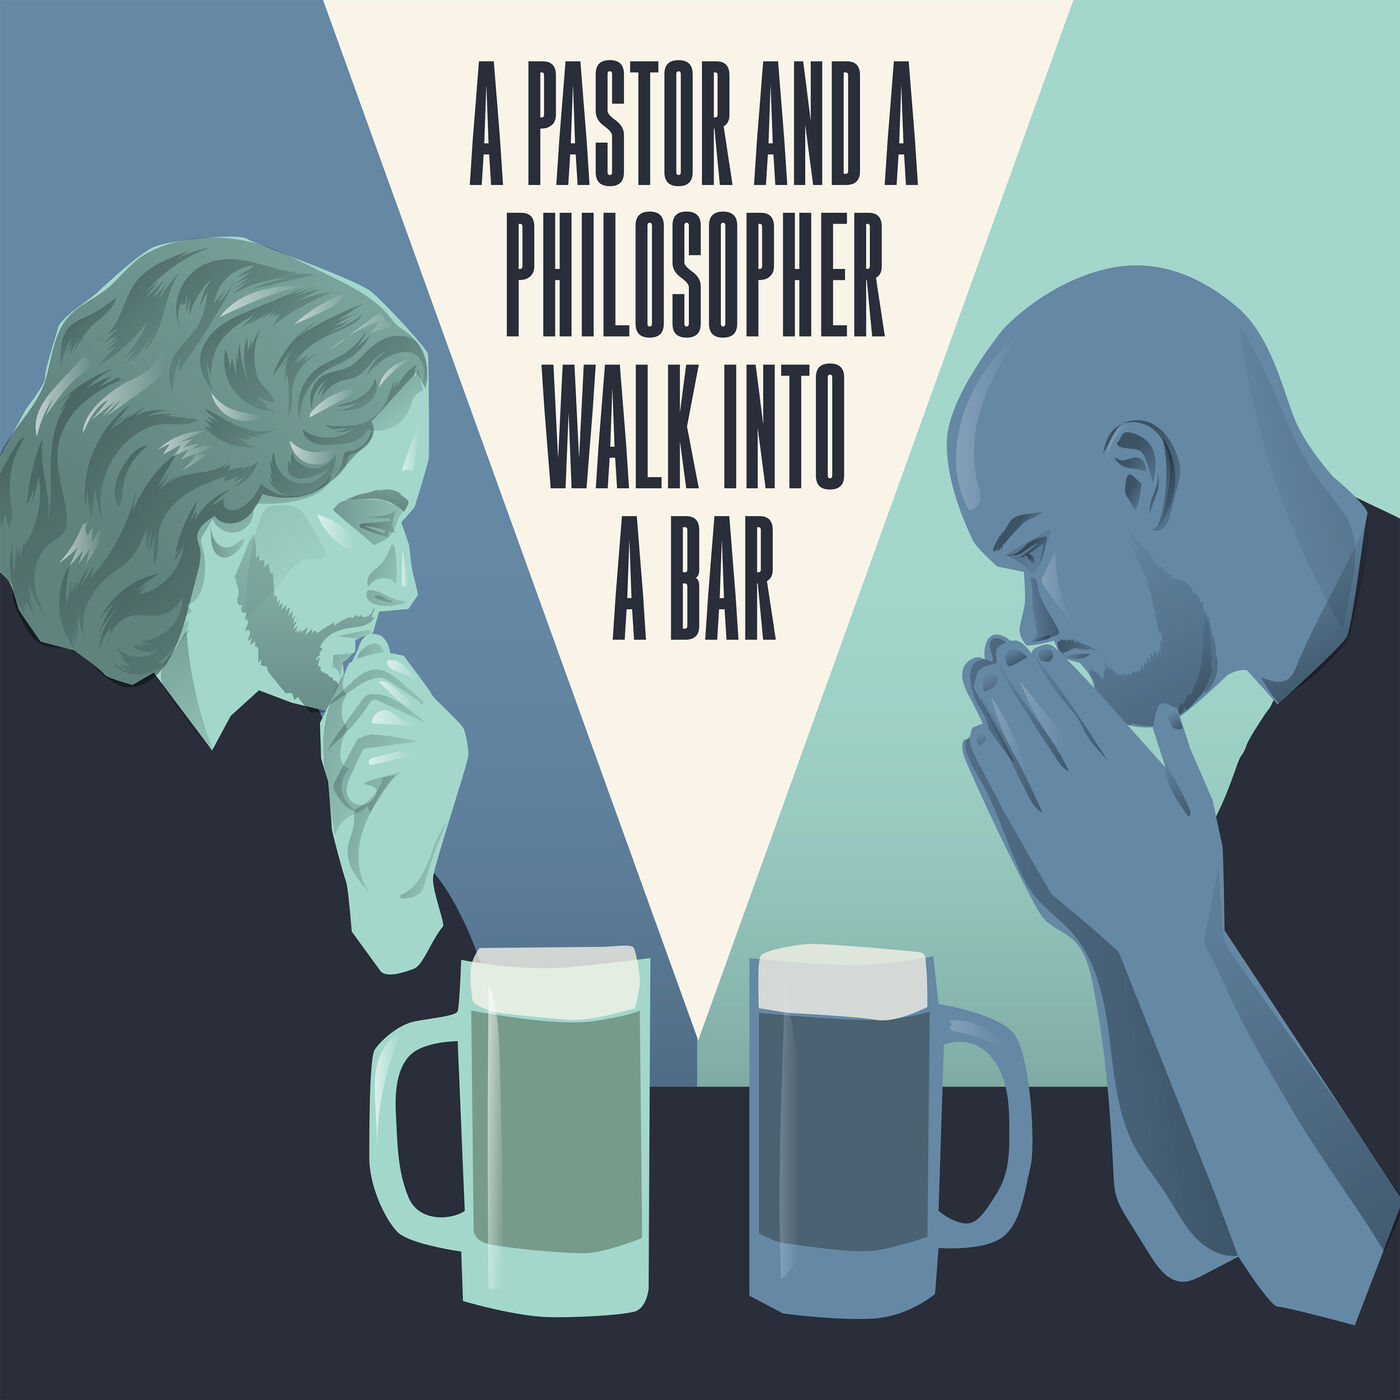 Welcome to A Pastor and a Philosopher Walk into a Bar